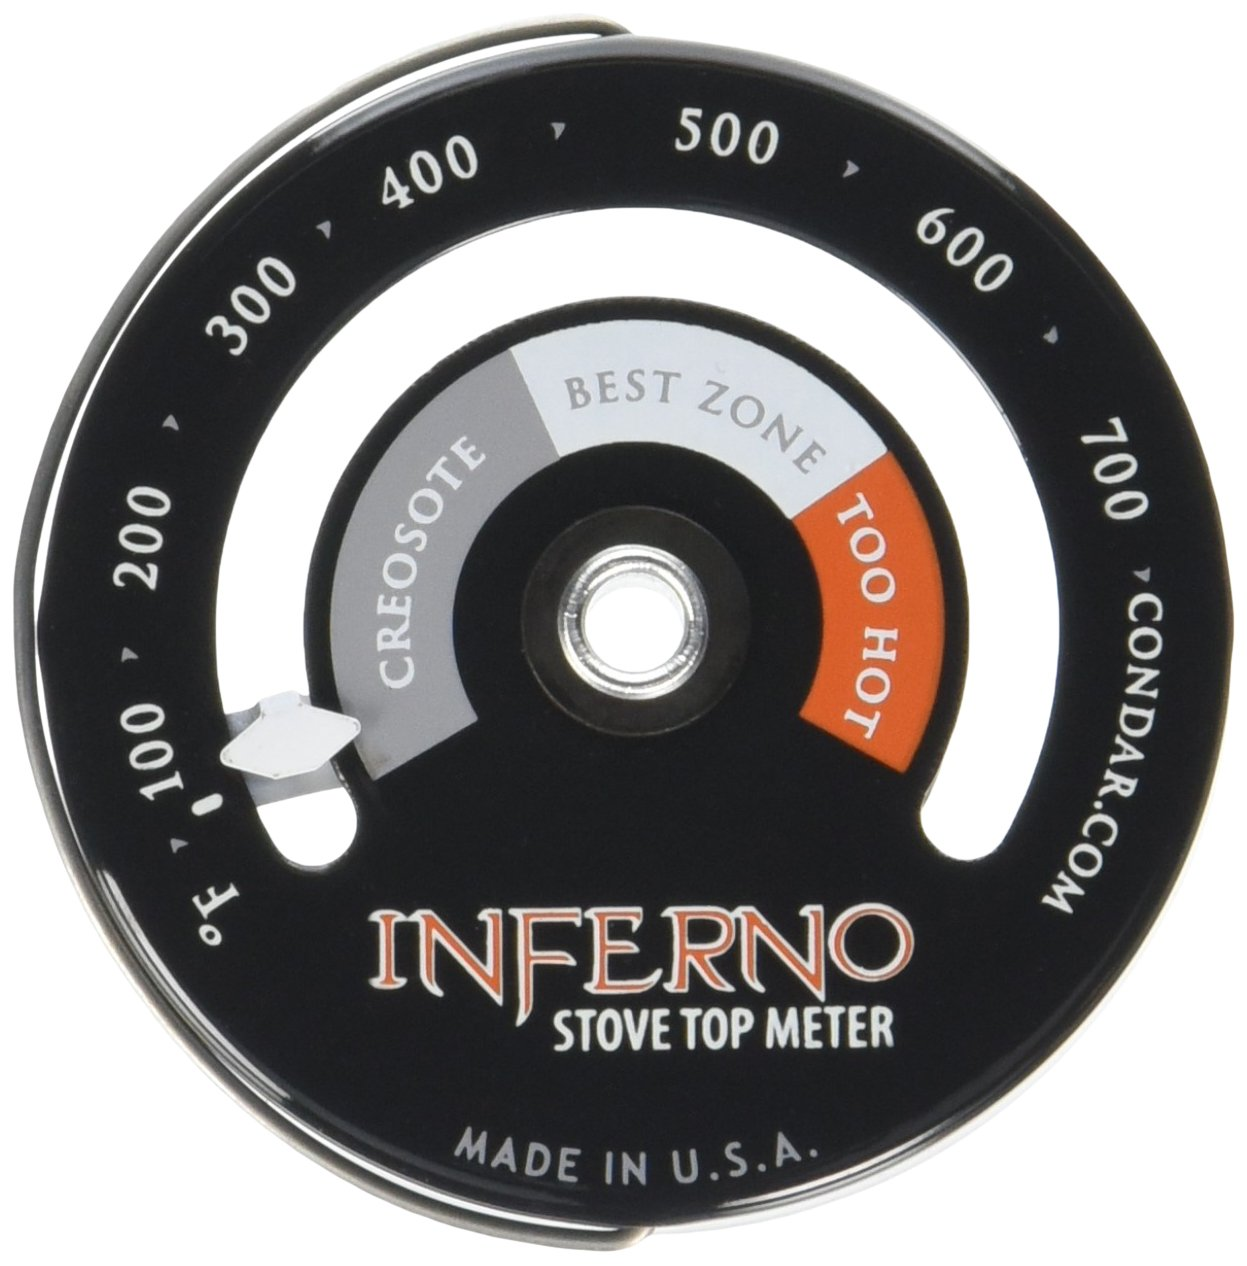 Inferno Stove Top Meter (3-30) thermometer calibrated to measure temperatures on stove top.